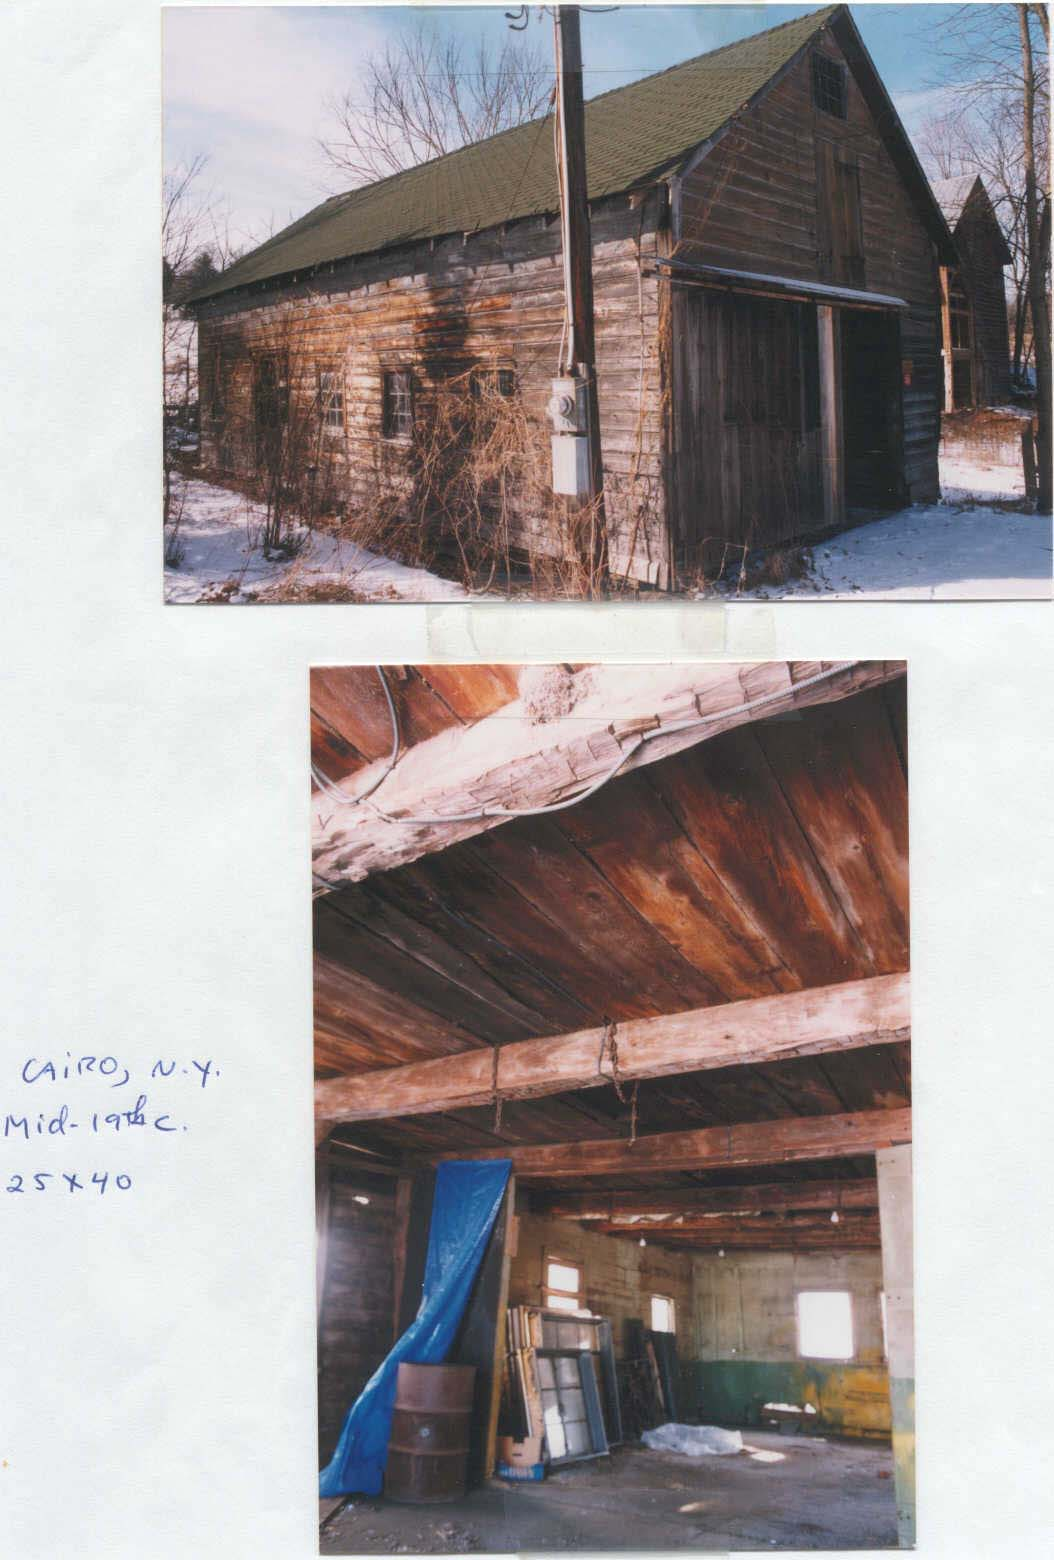 25-ft x 40-ft Catskill, NY 19th C. barn